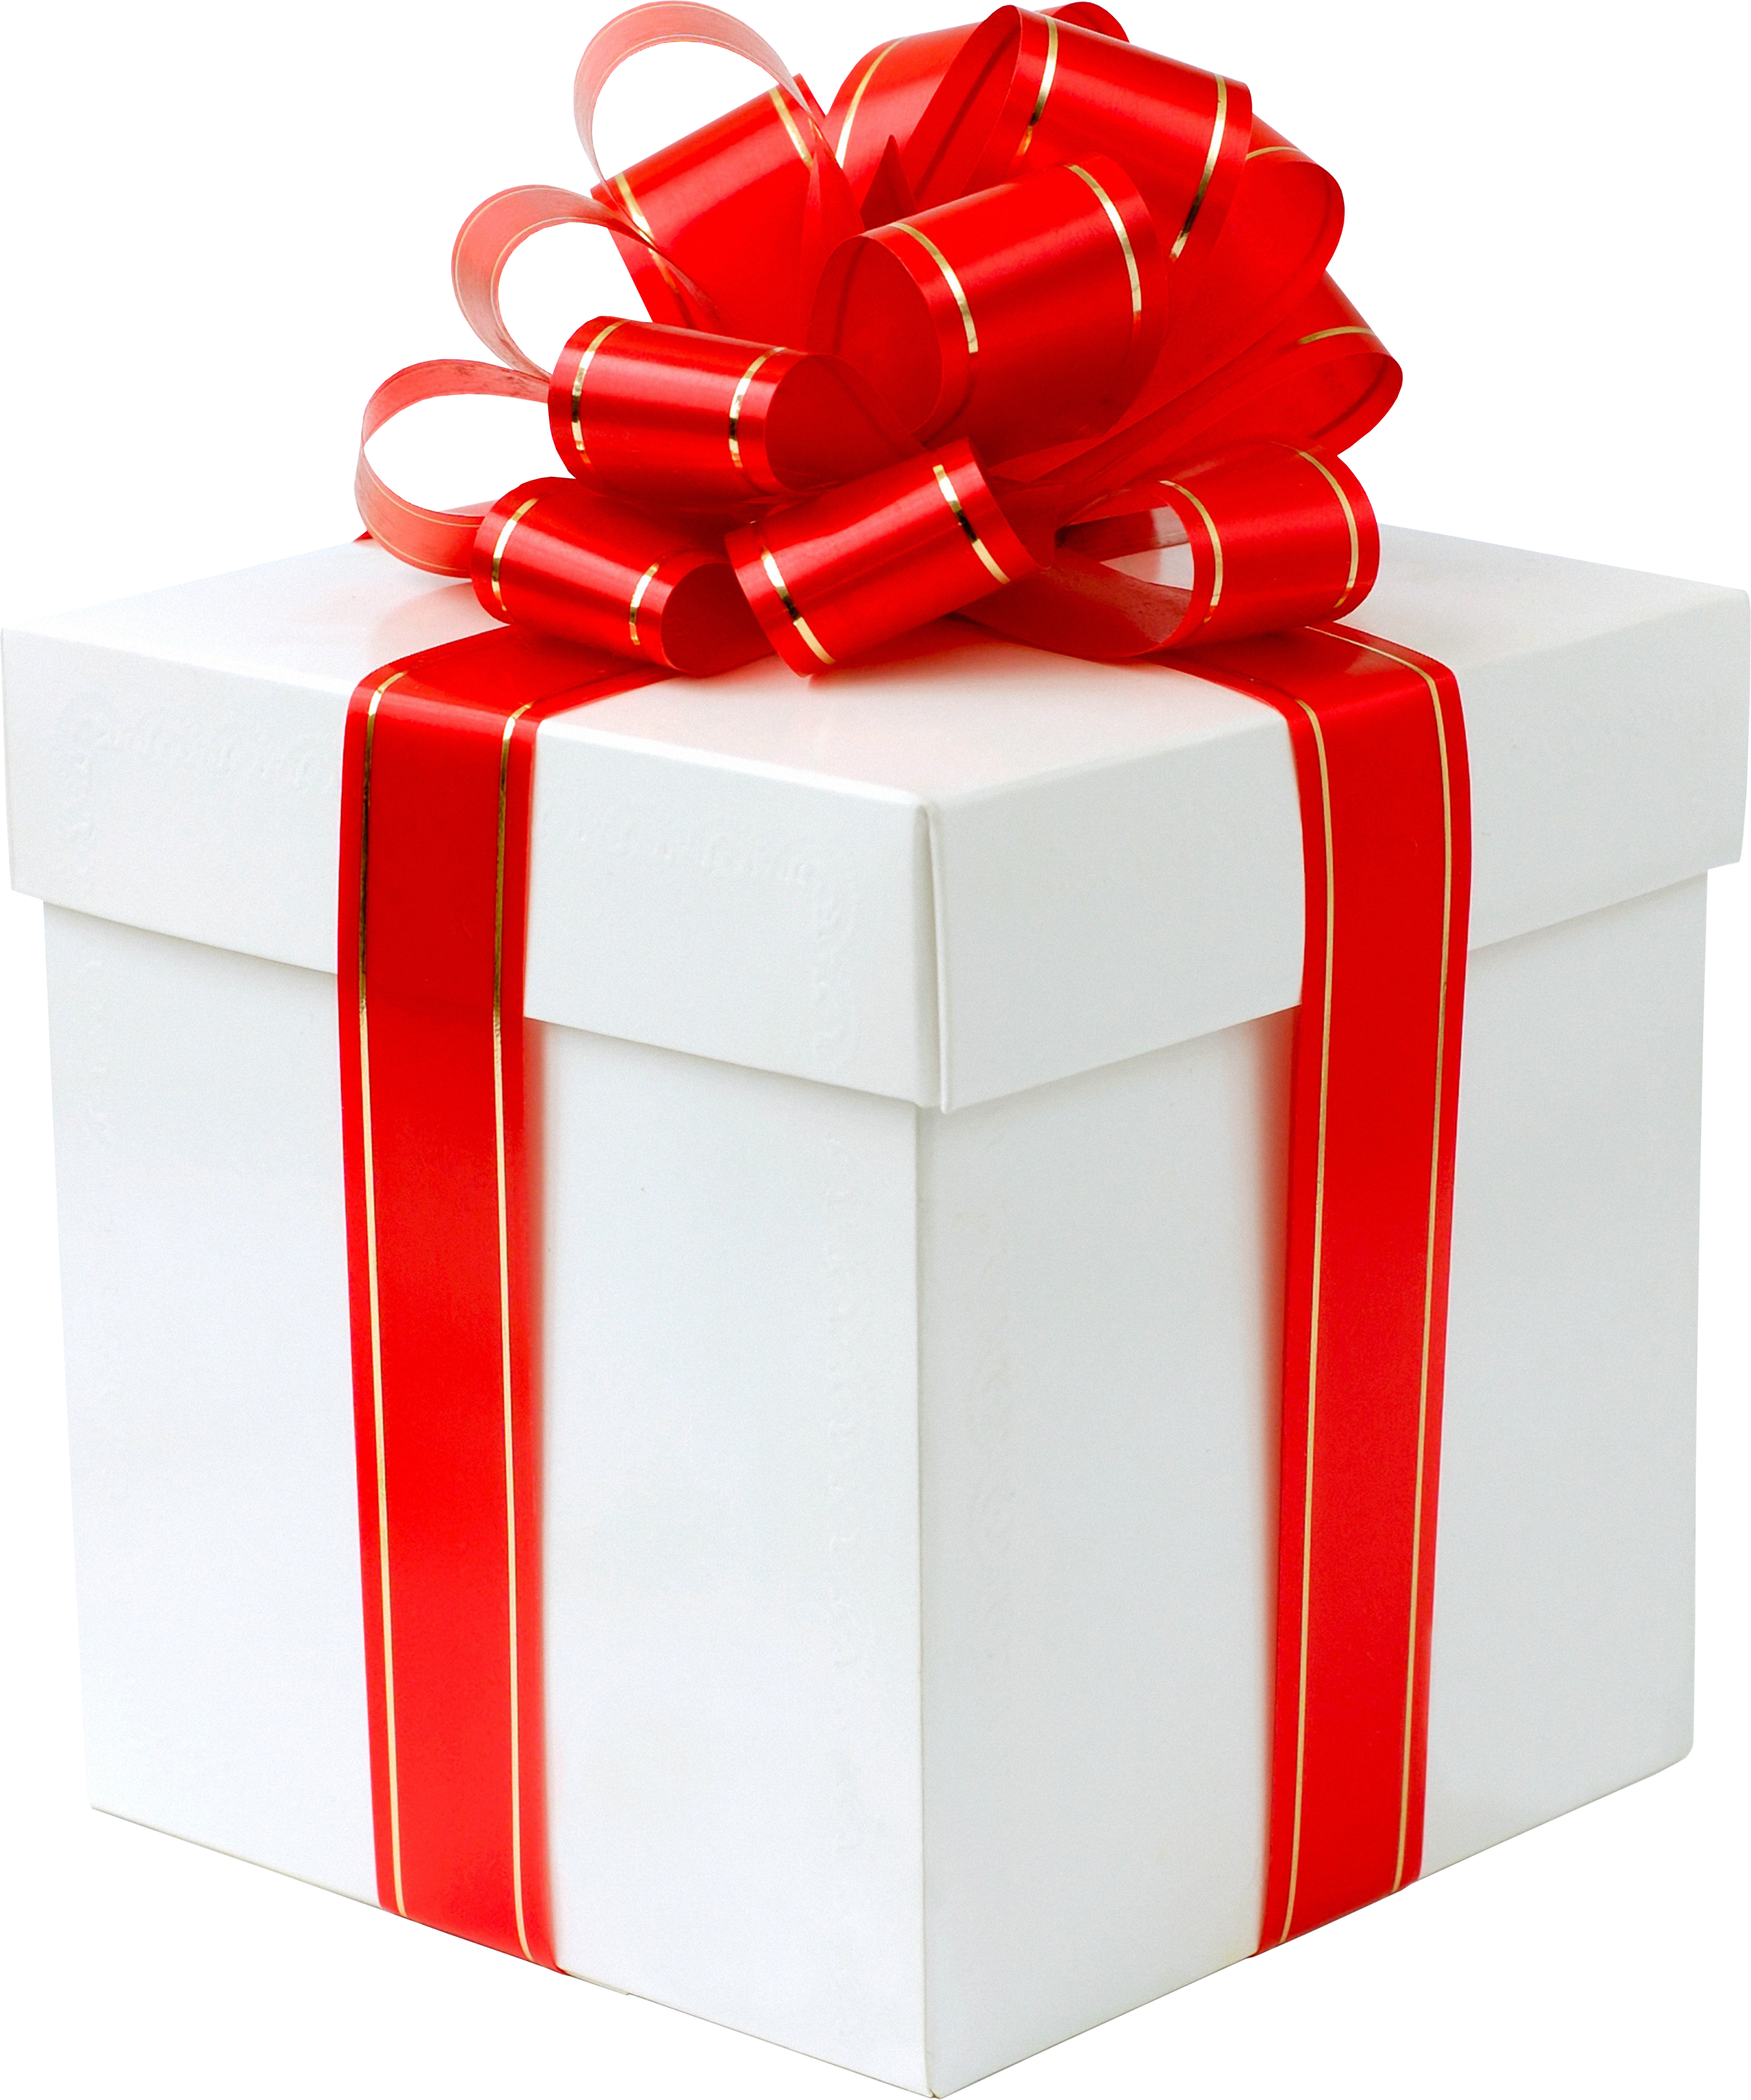 Present box png. Gift image free download